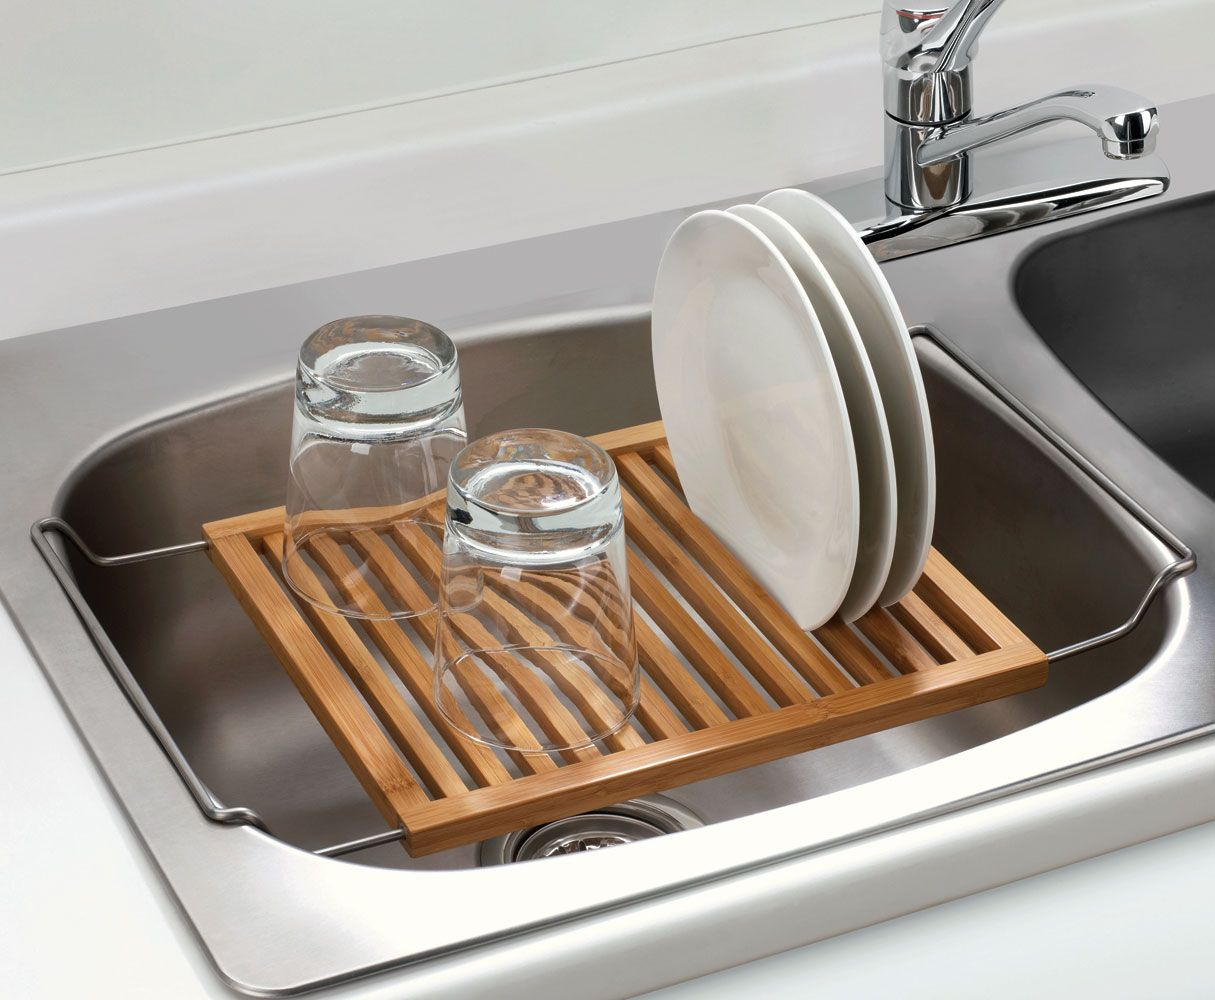 Over The Sink Dish Drying Rack In Bamboo Dish Rack Drying Kitchen Organization Kitchen Storage